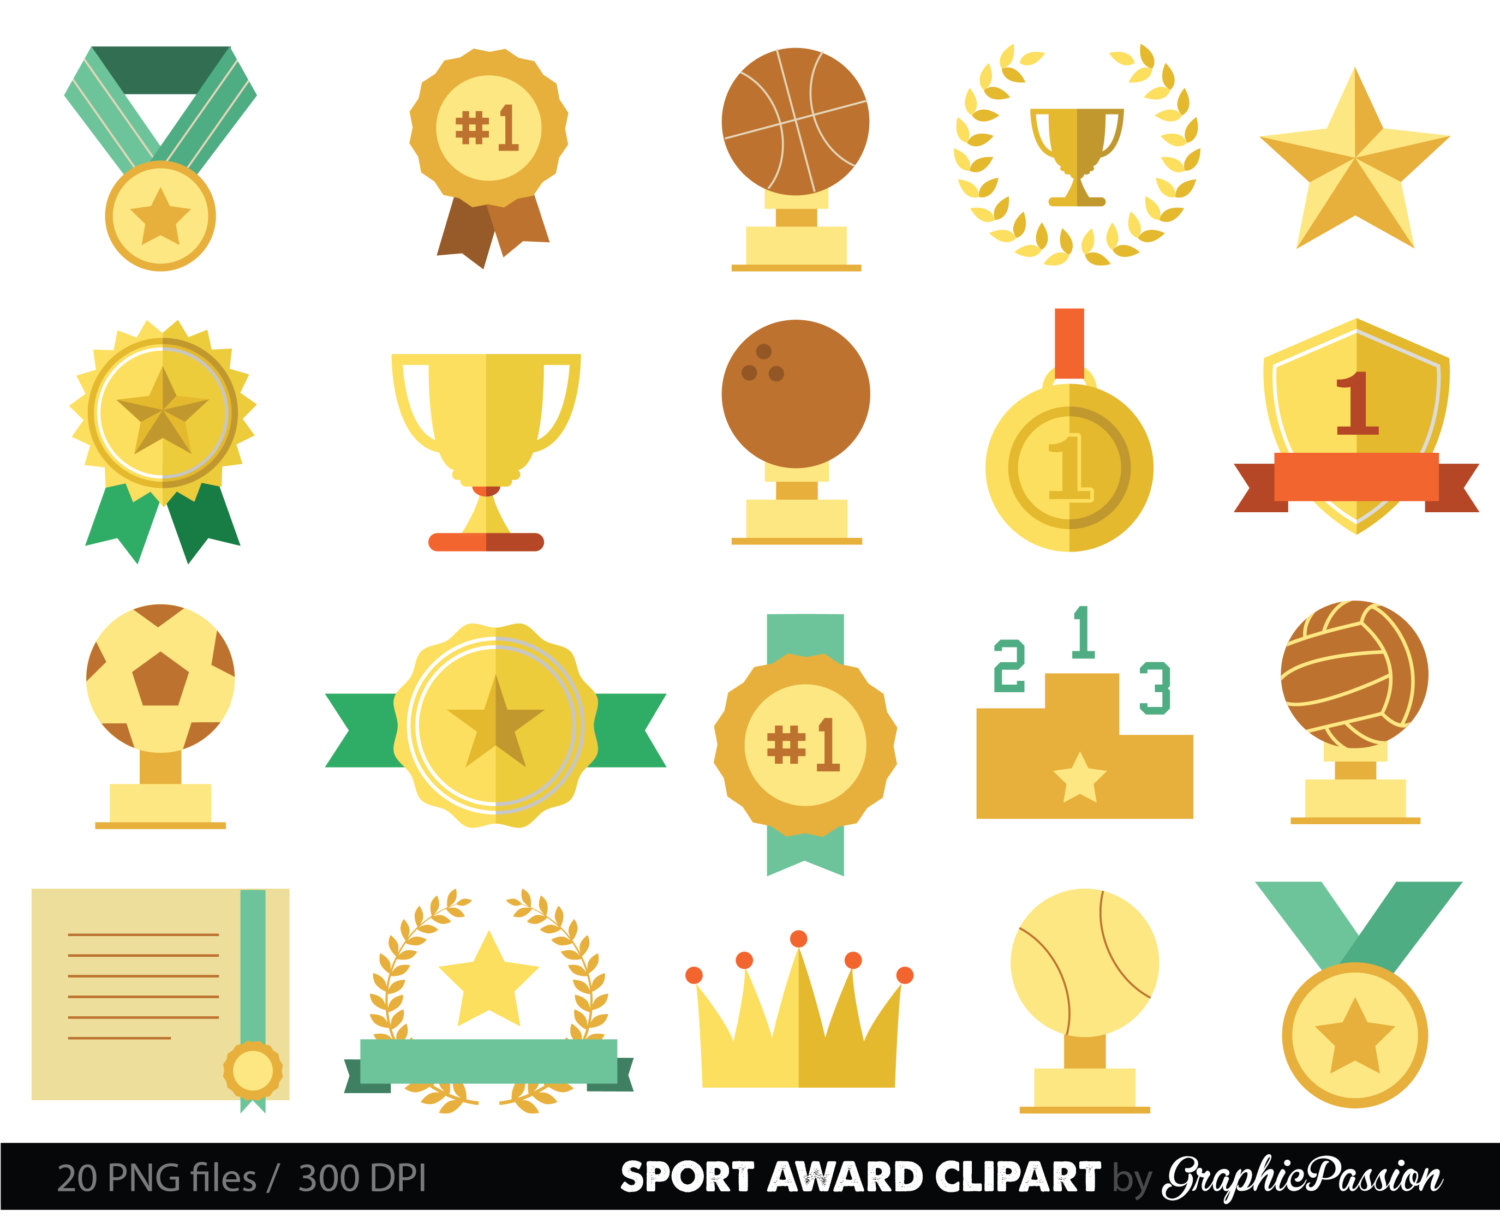 Sports racing prizes flags. Award clipart medal